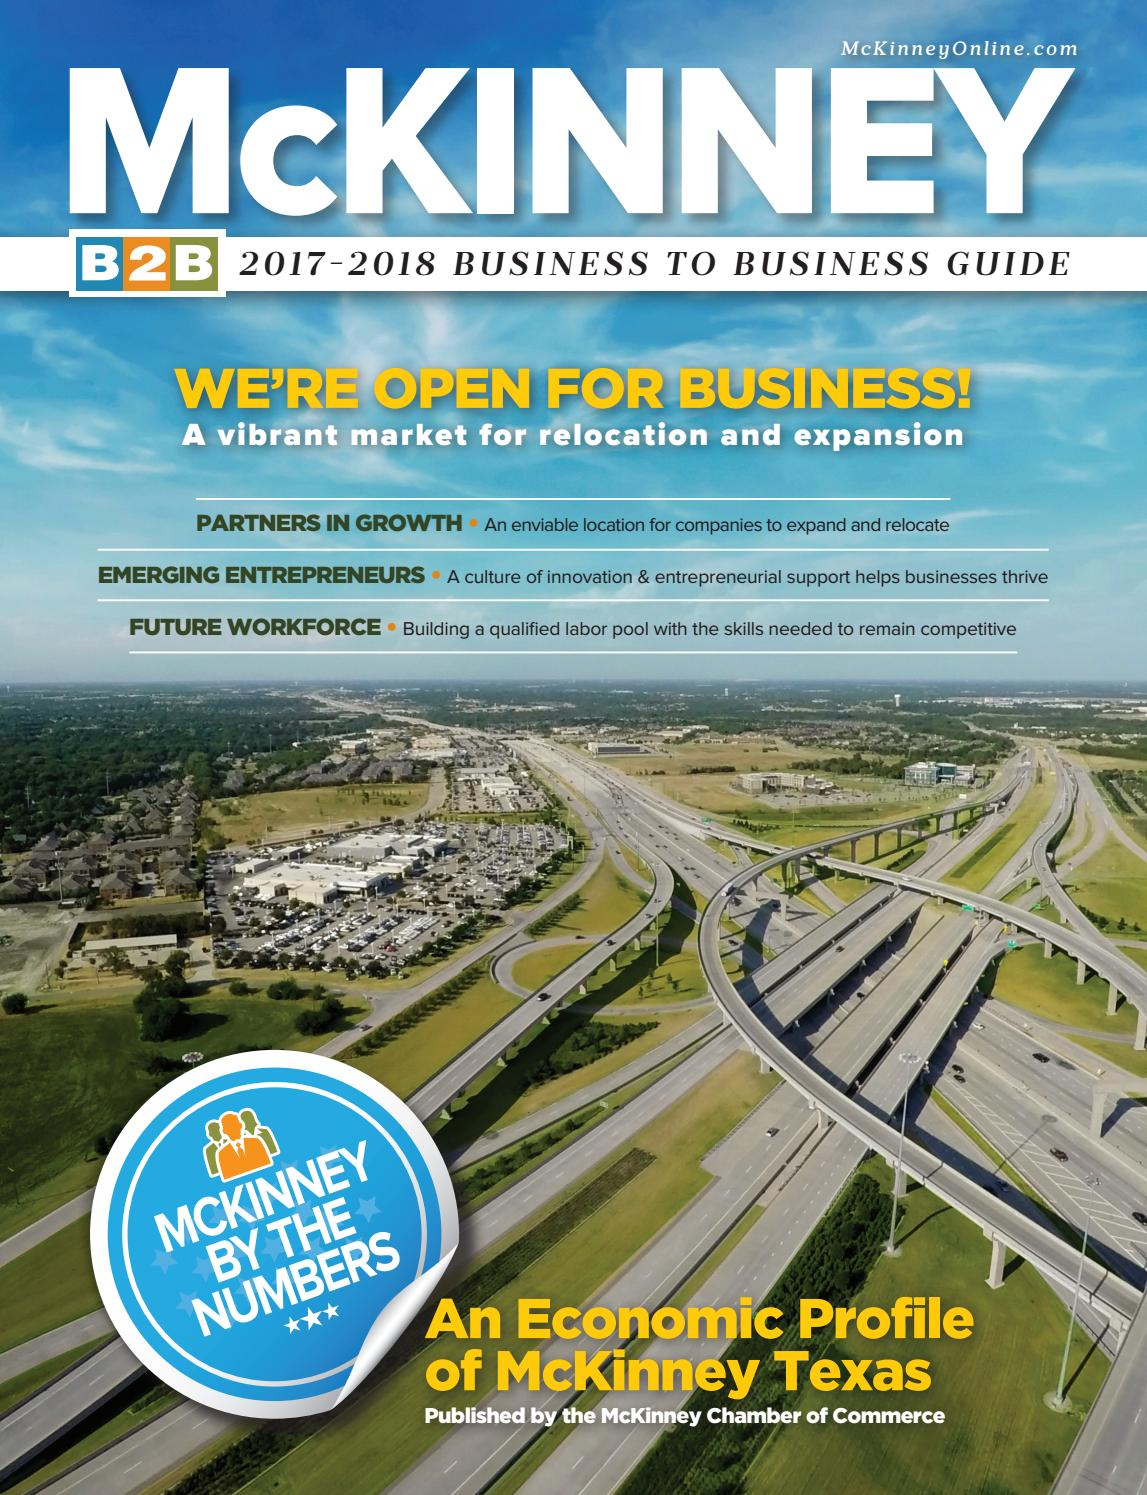 Mckinney Tx Chamber Of Commerce B2B Guide Business Directory With Sprinh Break In Collin College 2029